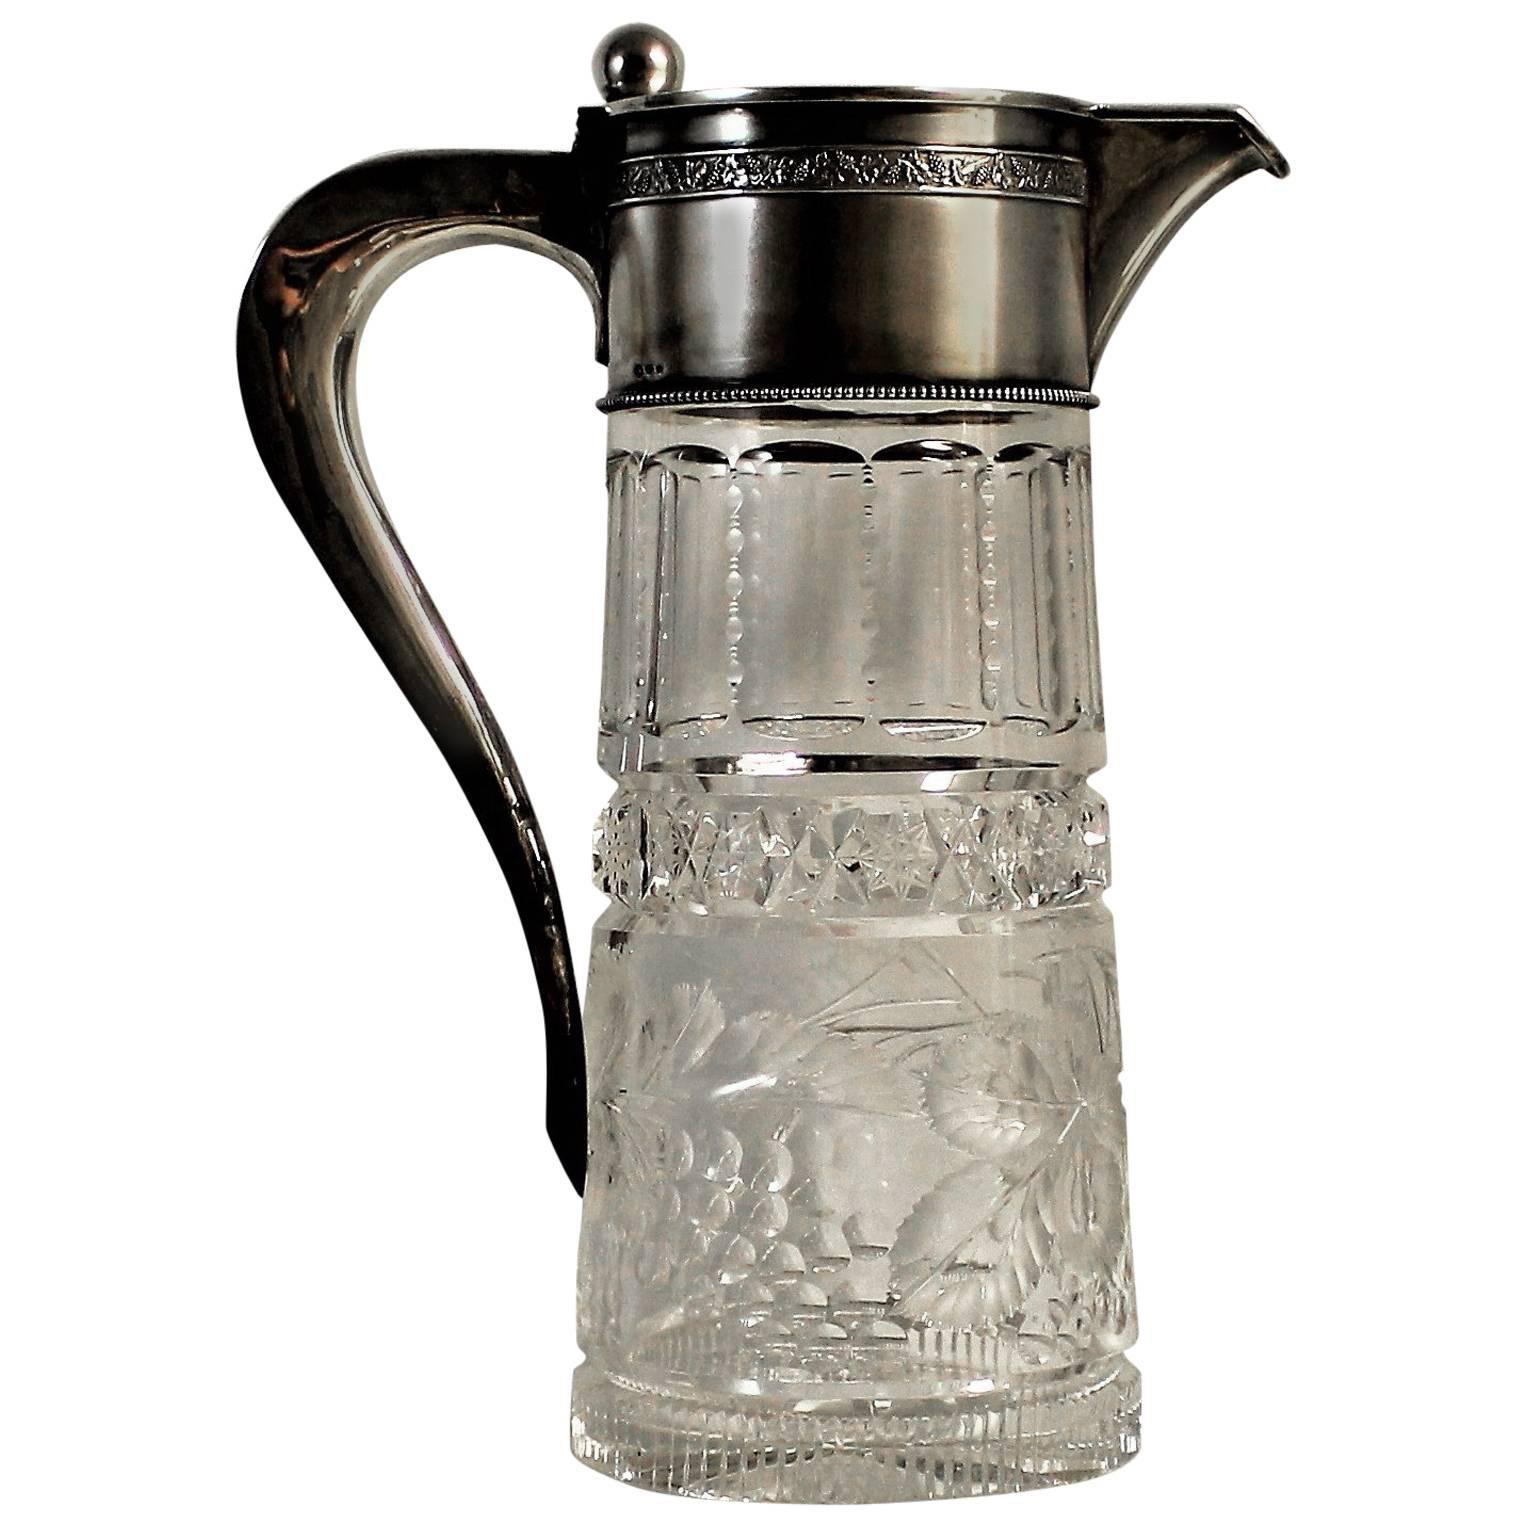 19th Century Continental Silver and Cut Crystal Pitcher